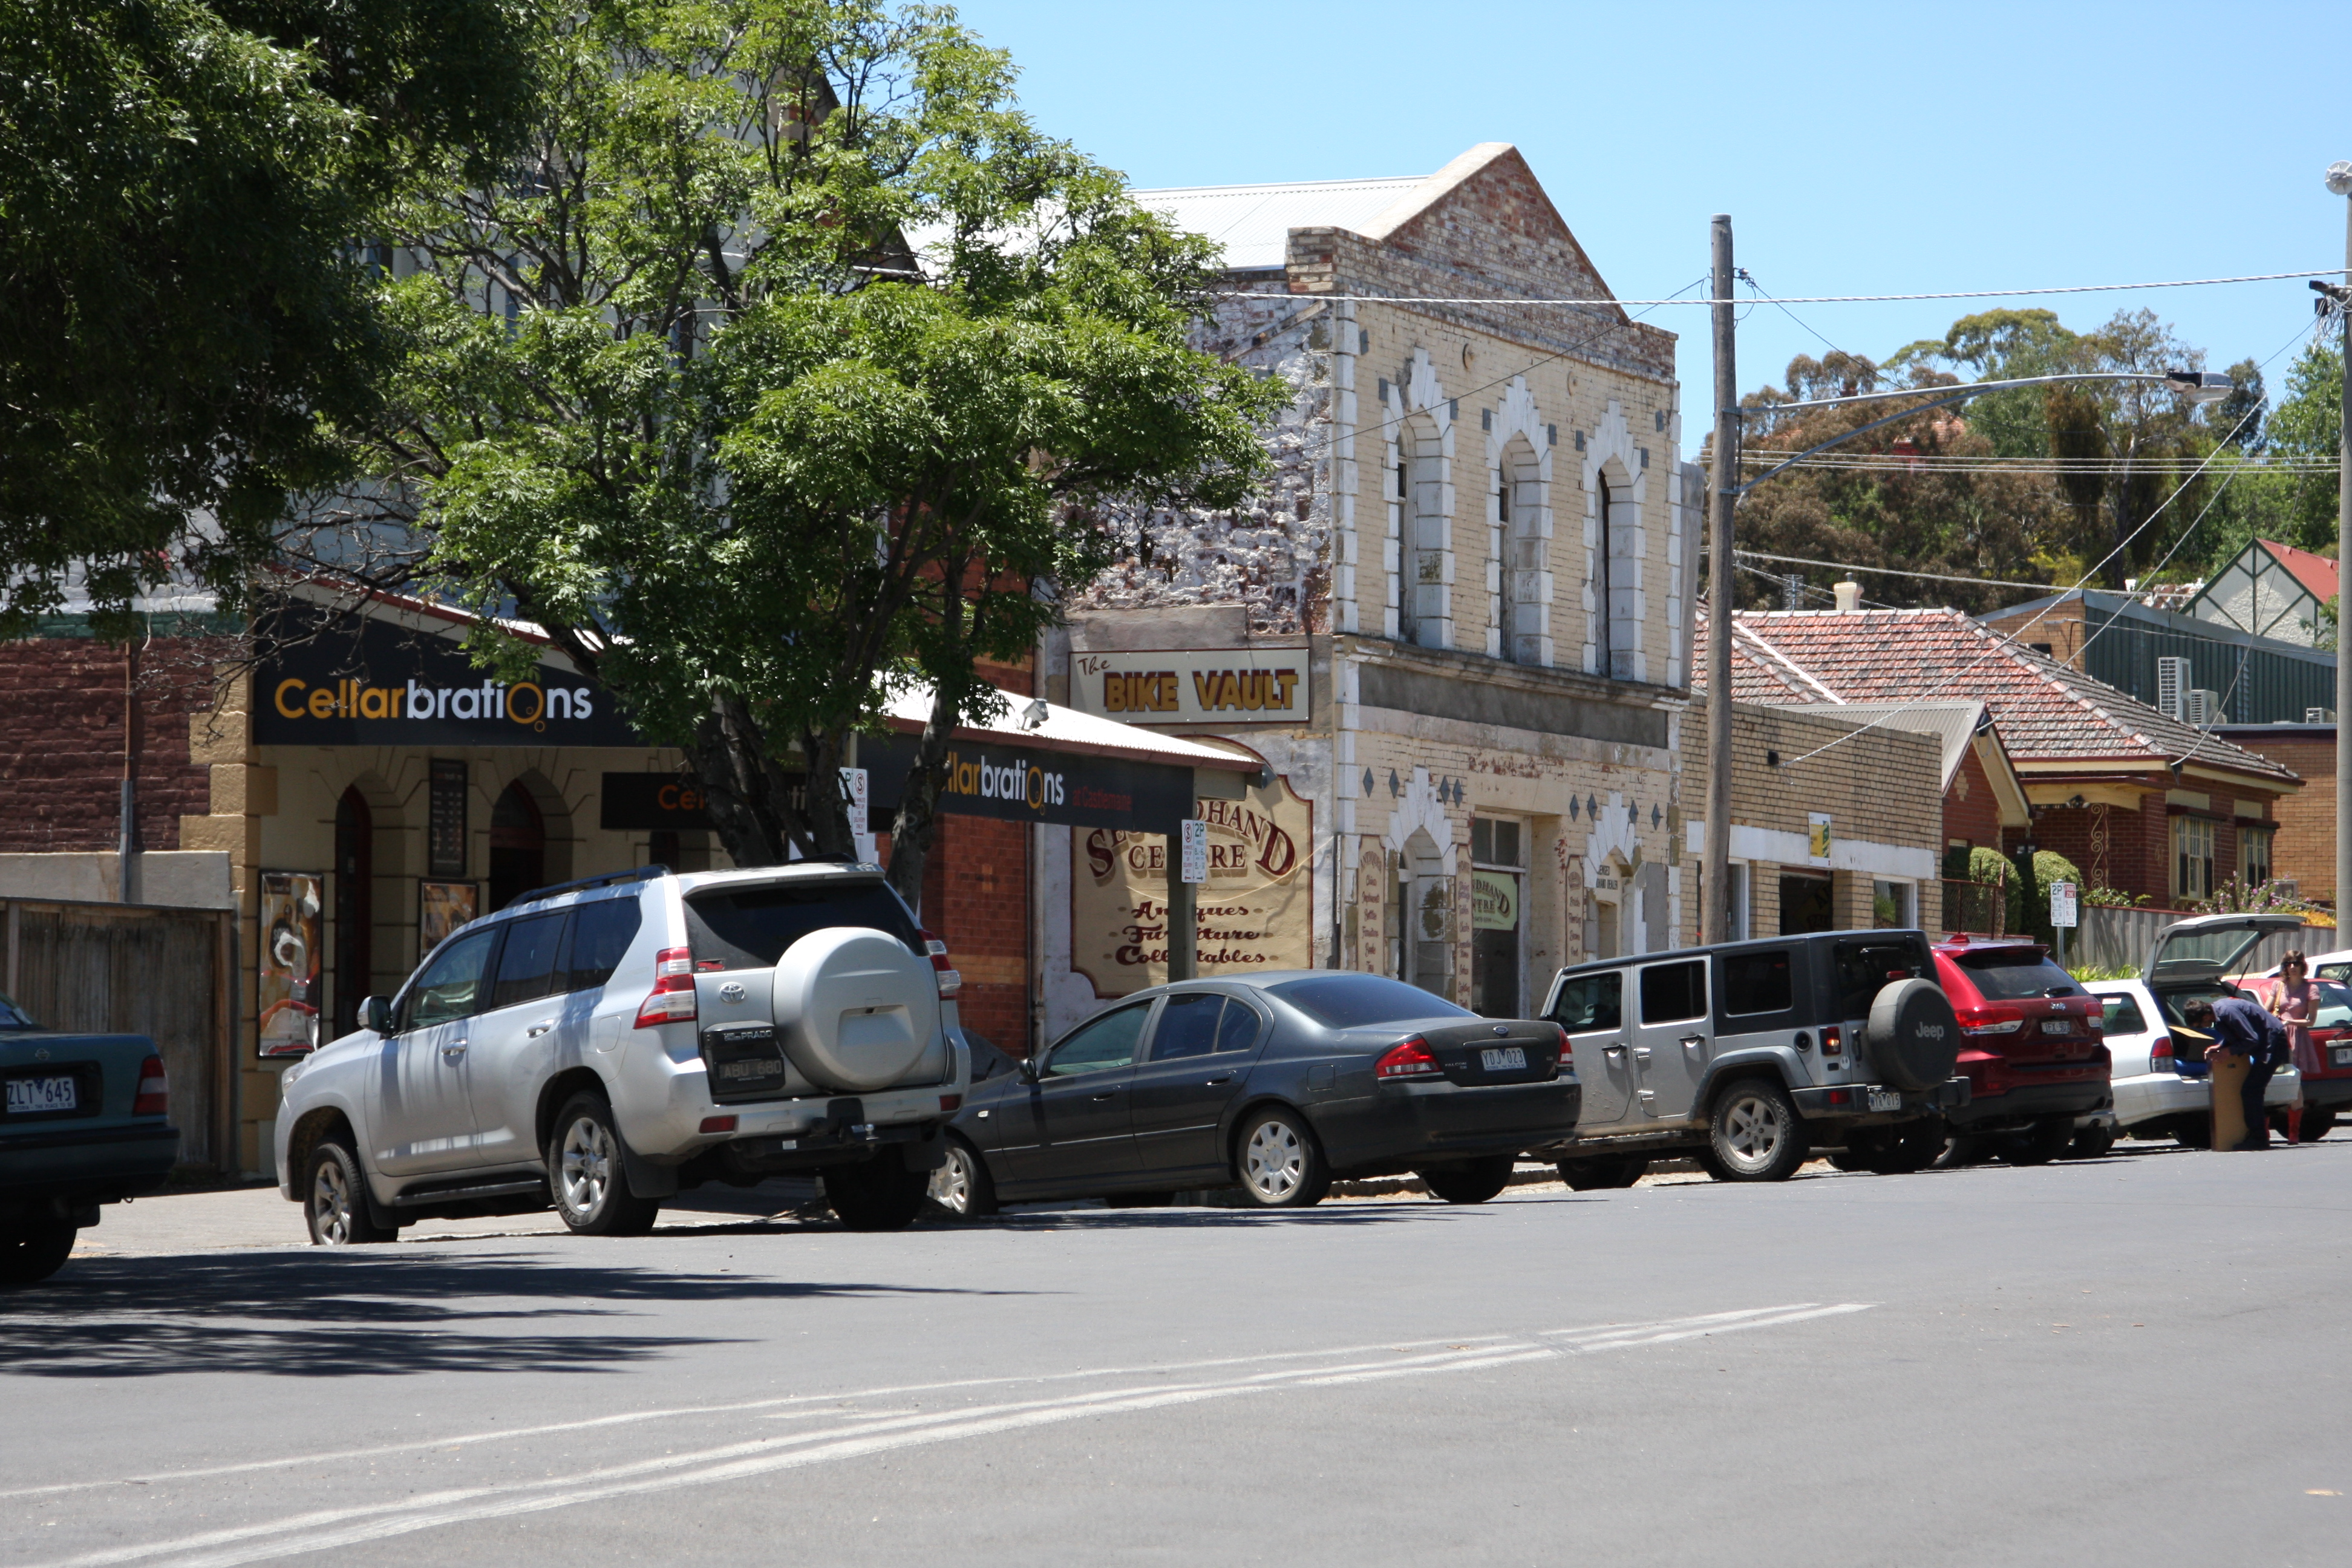 some old buildings in the town of Castlemaine, Australia